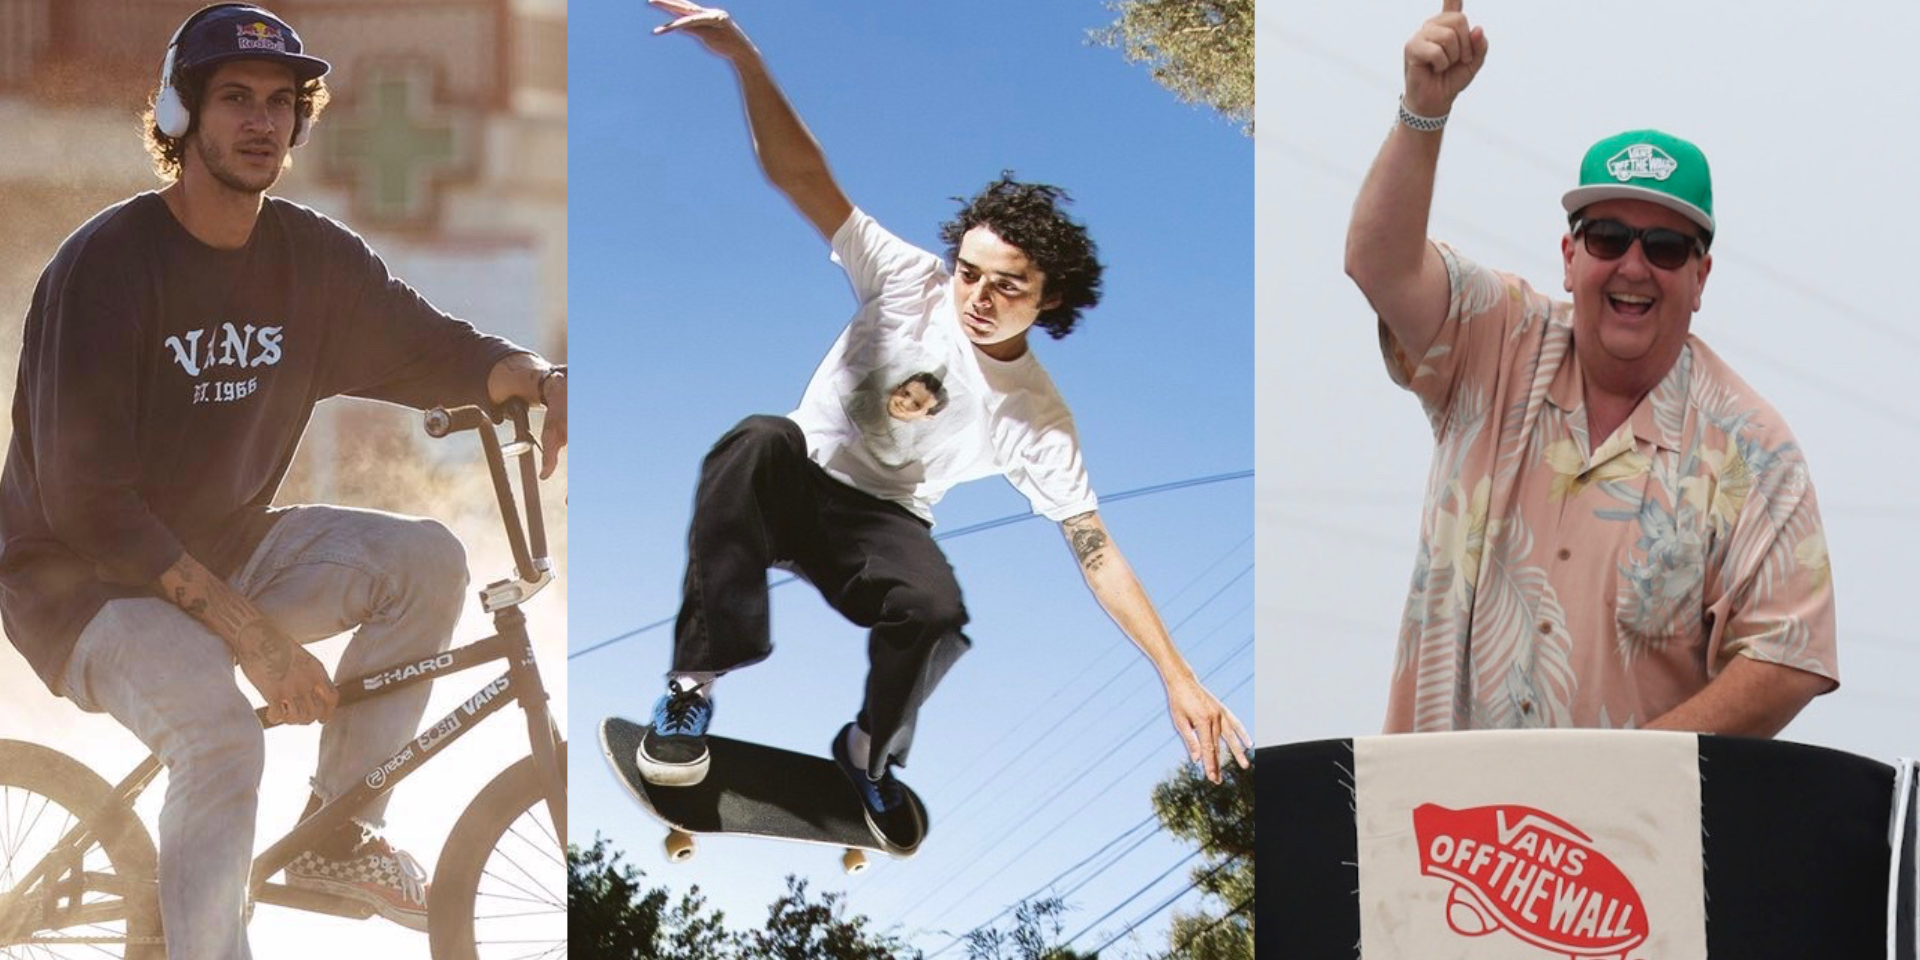 Relive those good old days in your VANS with these playlists